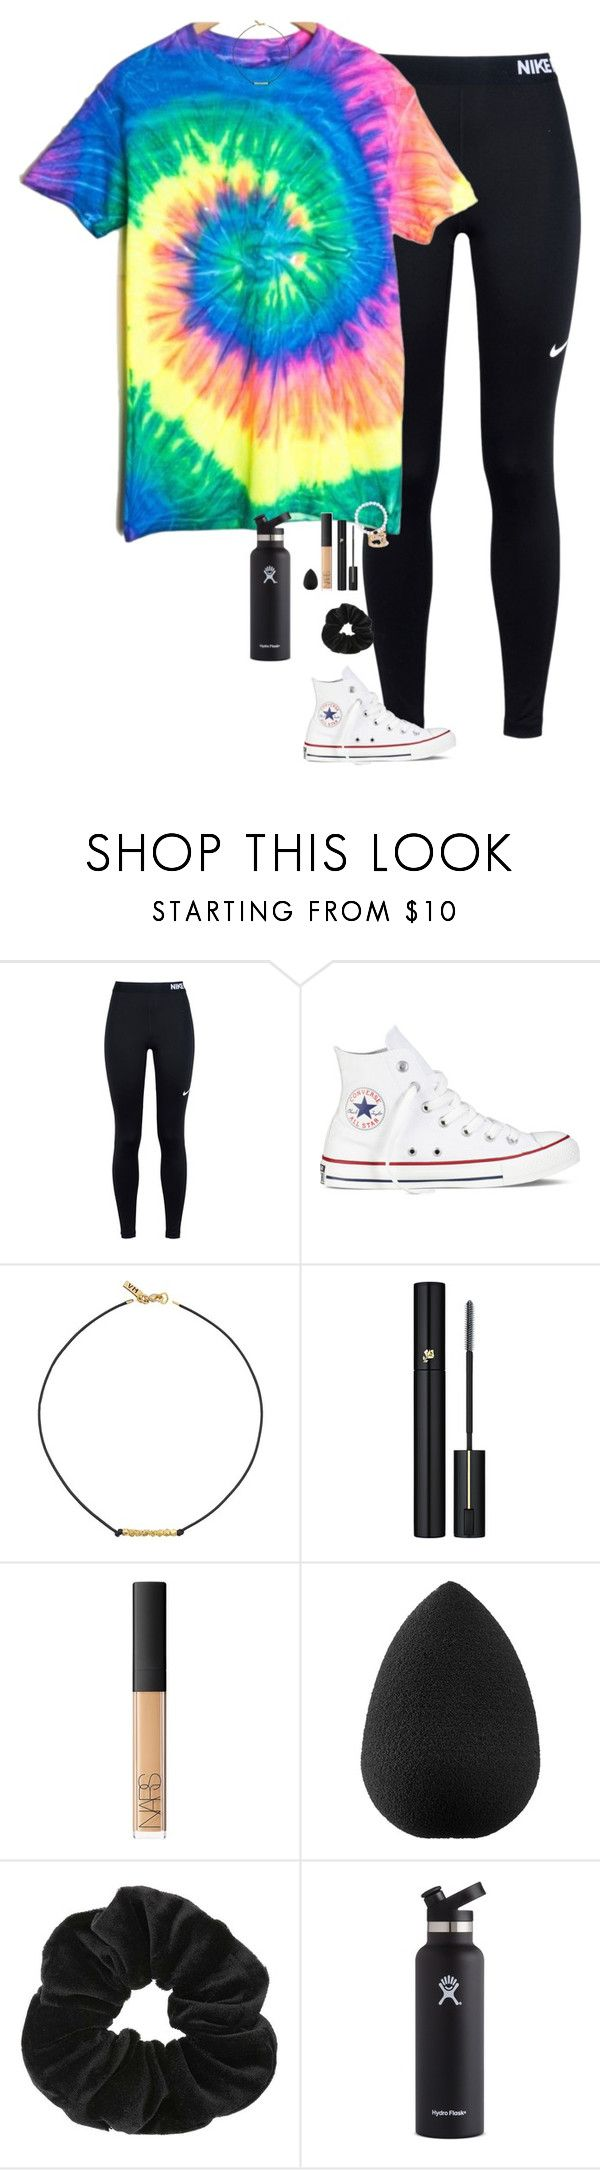 """Tye dye Tuesday"" by halledaniella ❤ liked on Polyvore featuring NIKE, Converse, Vanessa Mooney, Lancôme, NARS Cosmetics, beautyblender, Miss Selfridge and Hydro Flask"